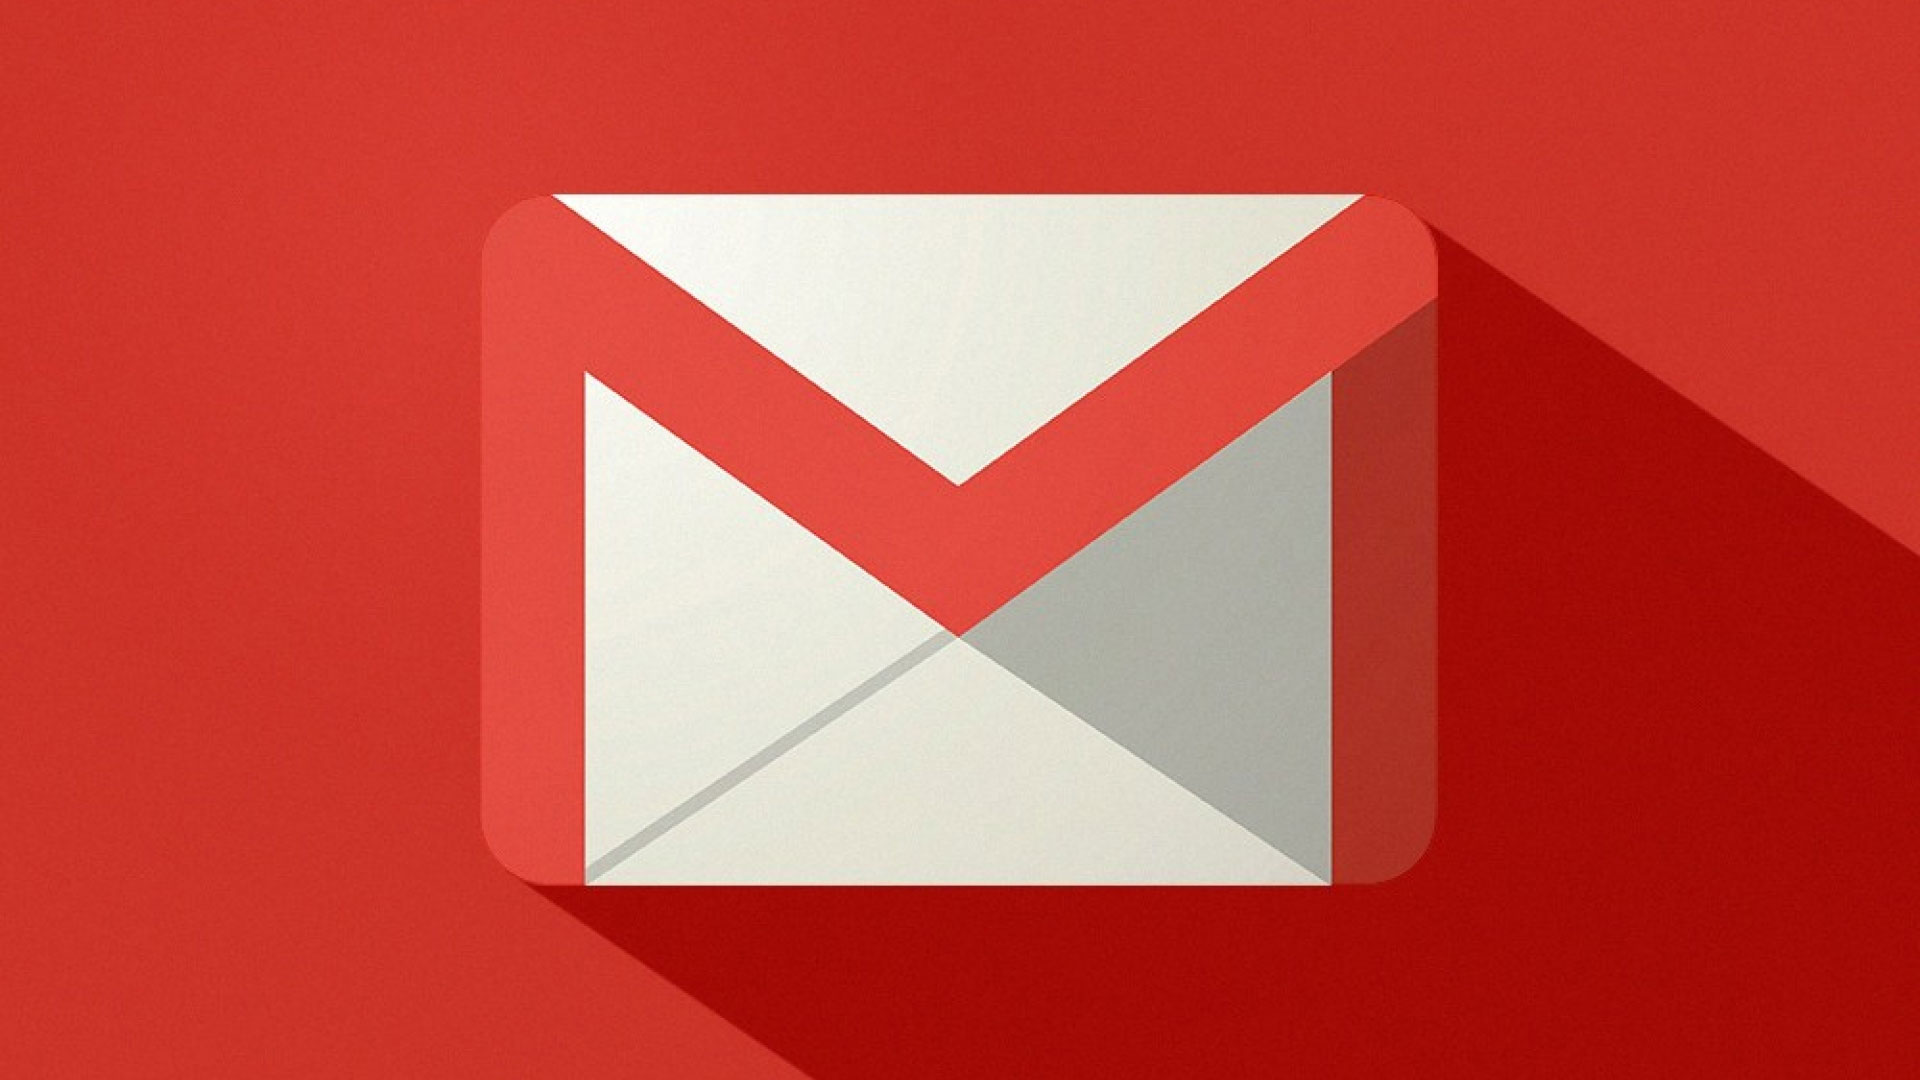 Tricks for Gmail to free up space and tidy up your mail